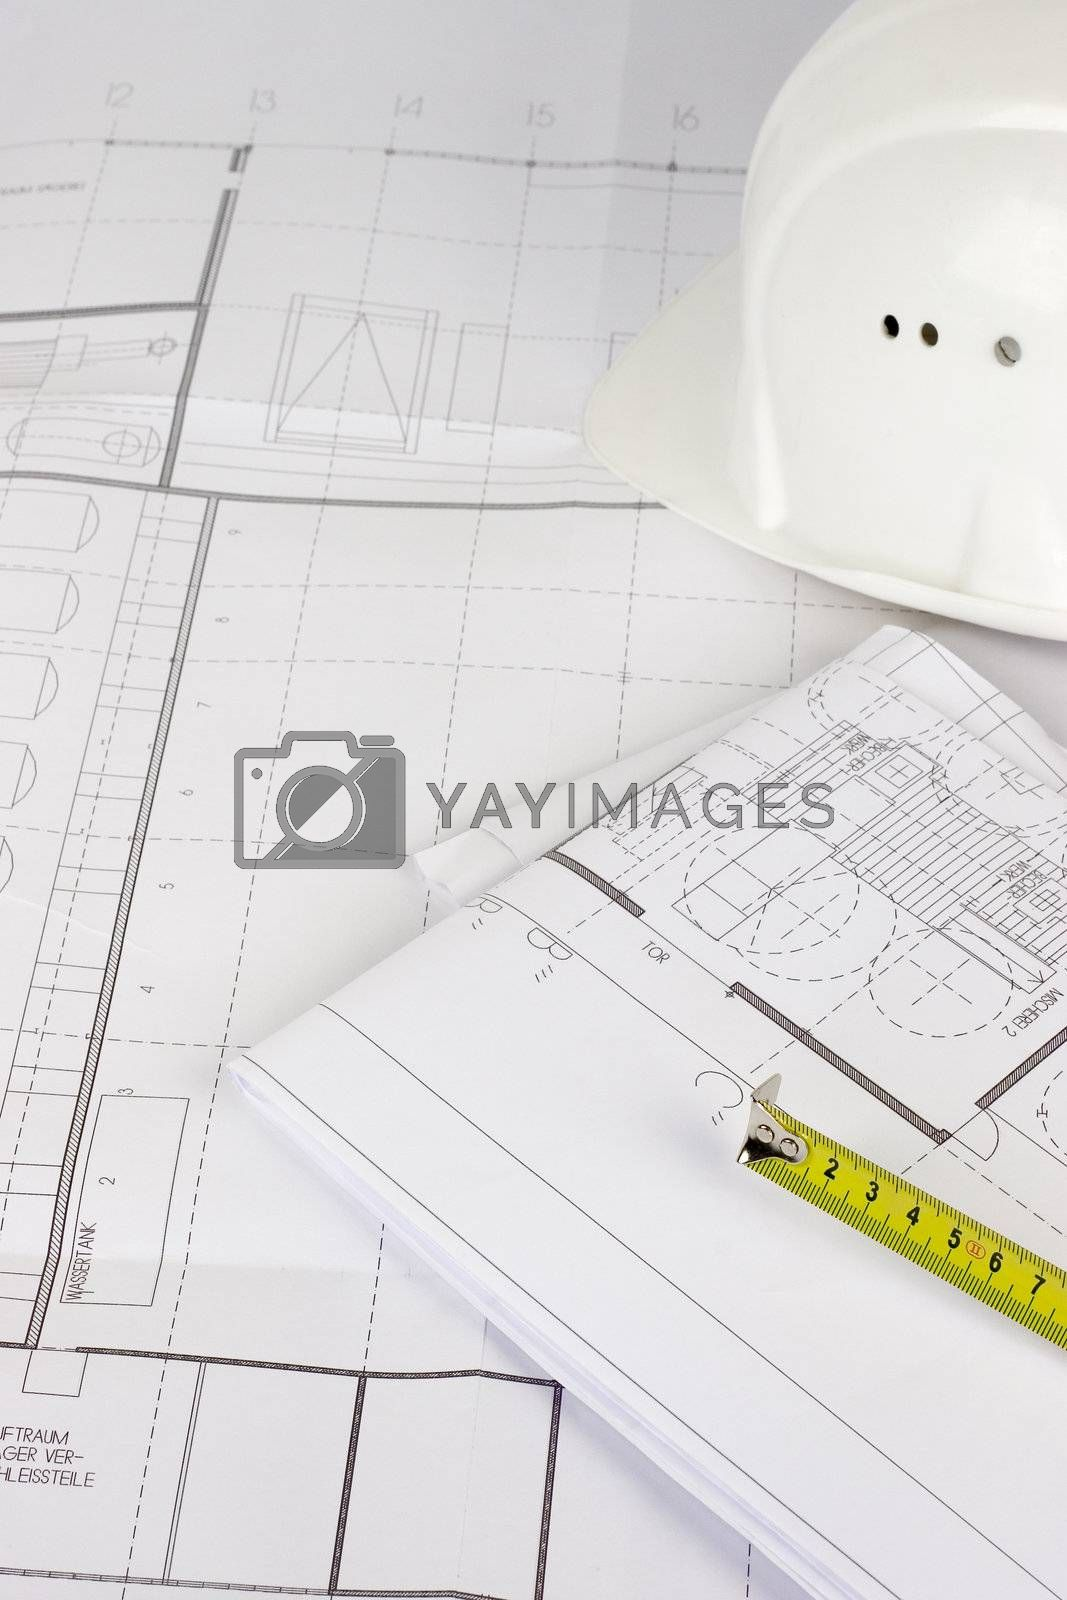 Hardhat and measuring tape lying on construction plans. Focus on the measuring tape.